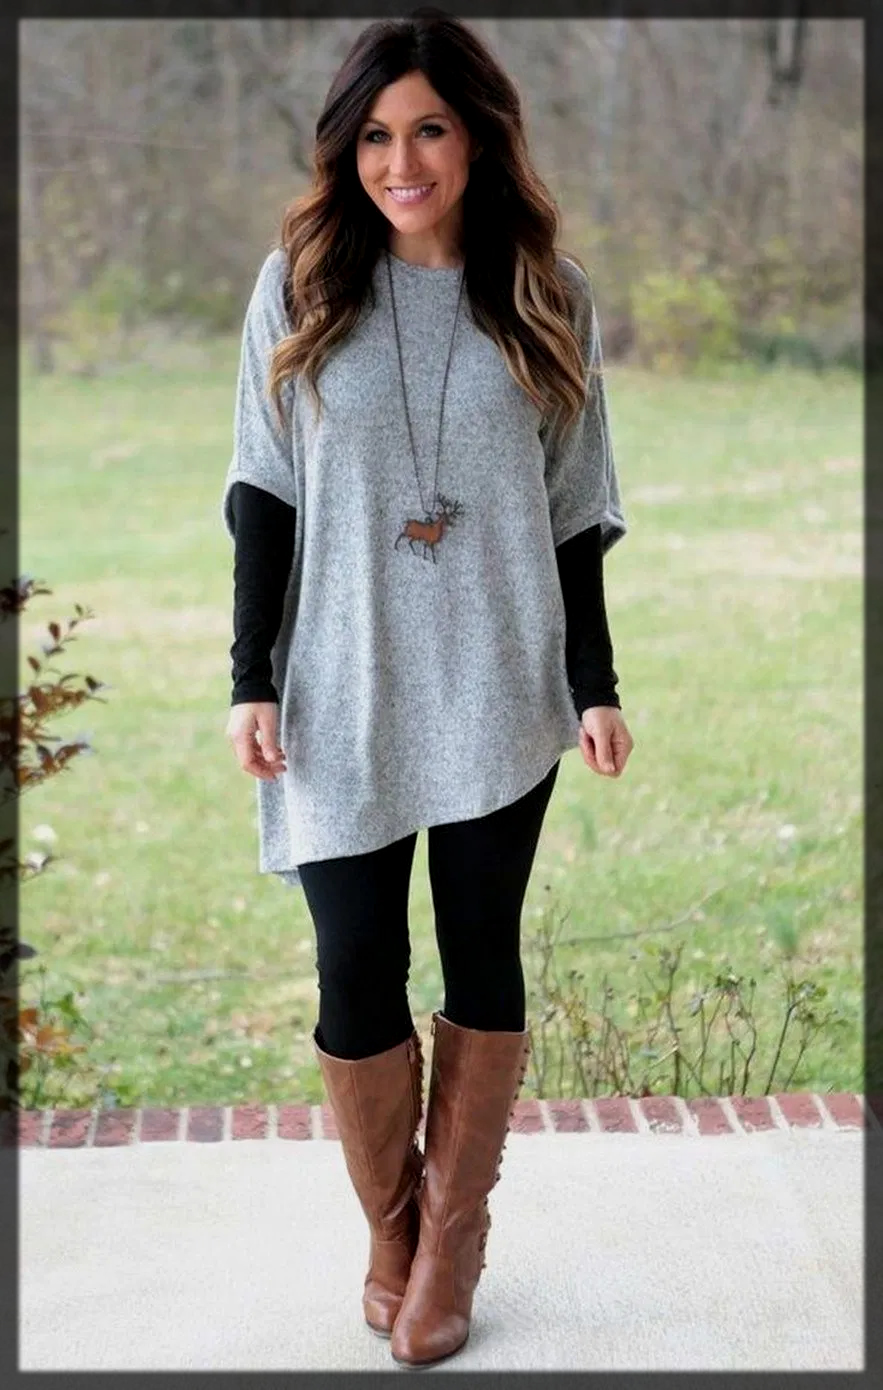 stylish winter outfit for teens